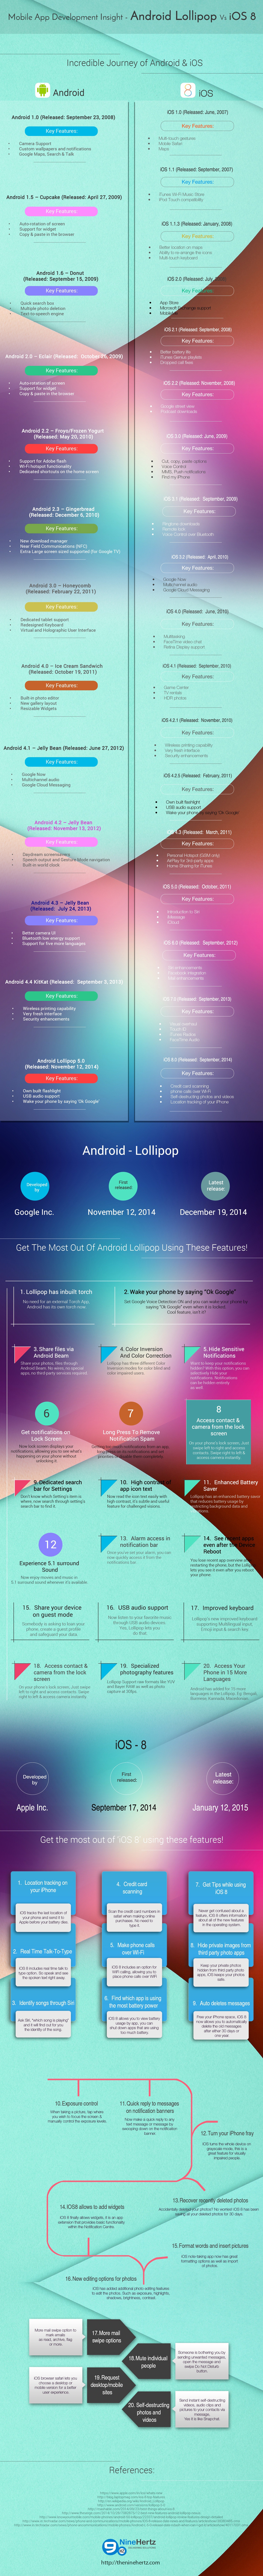 Mobile App development Insight - Android Lollipop vs iOS8